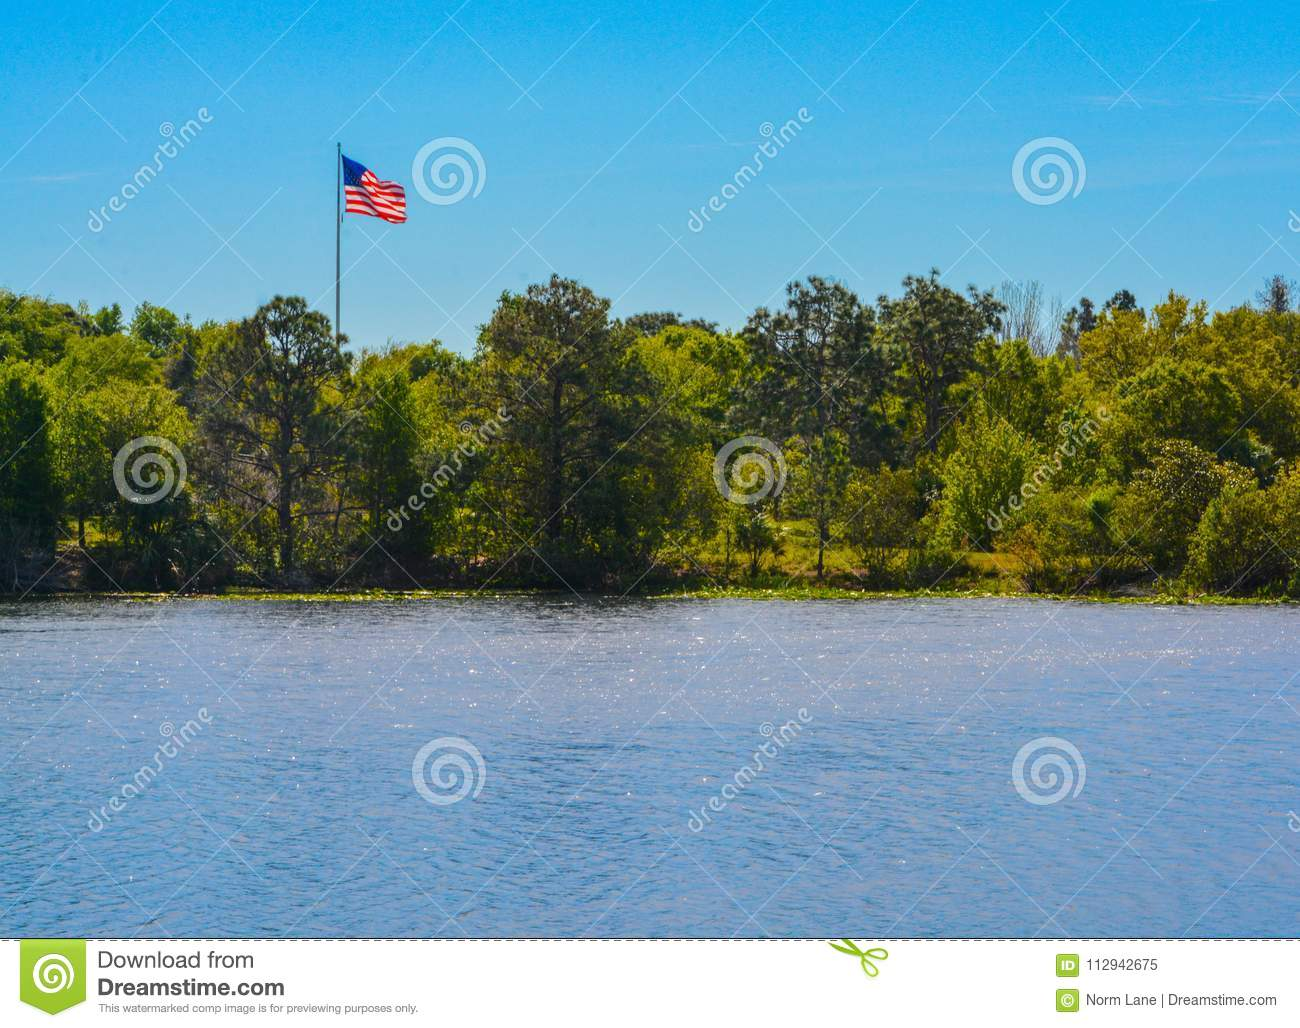 The American Flag, Stars and Stripes, Red, White and Blue